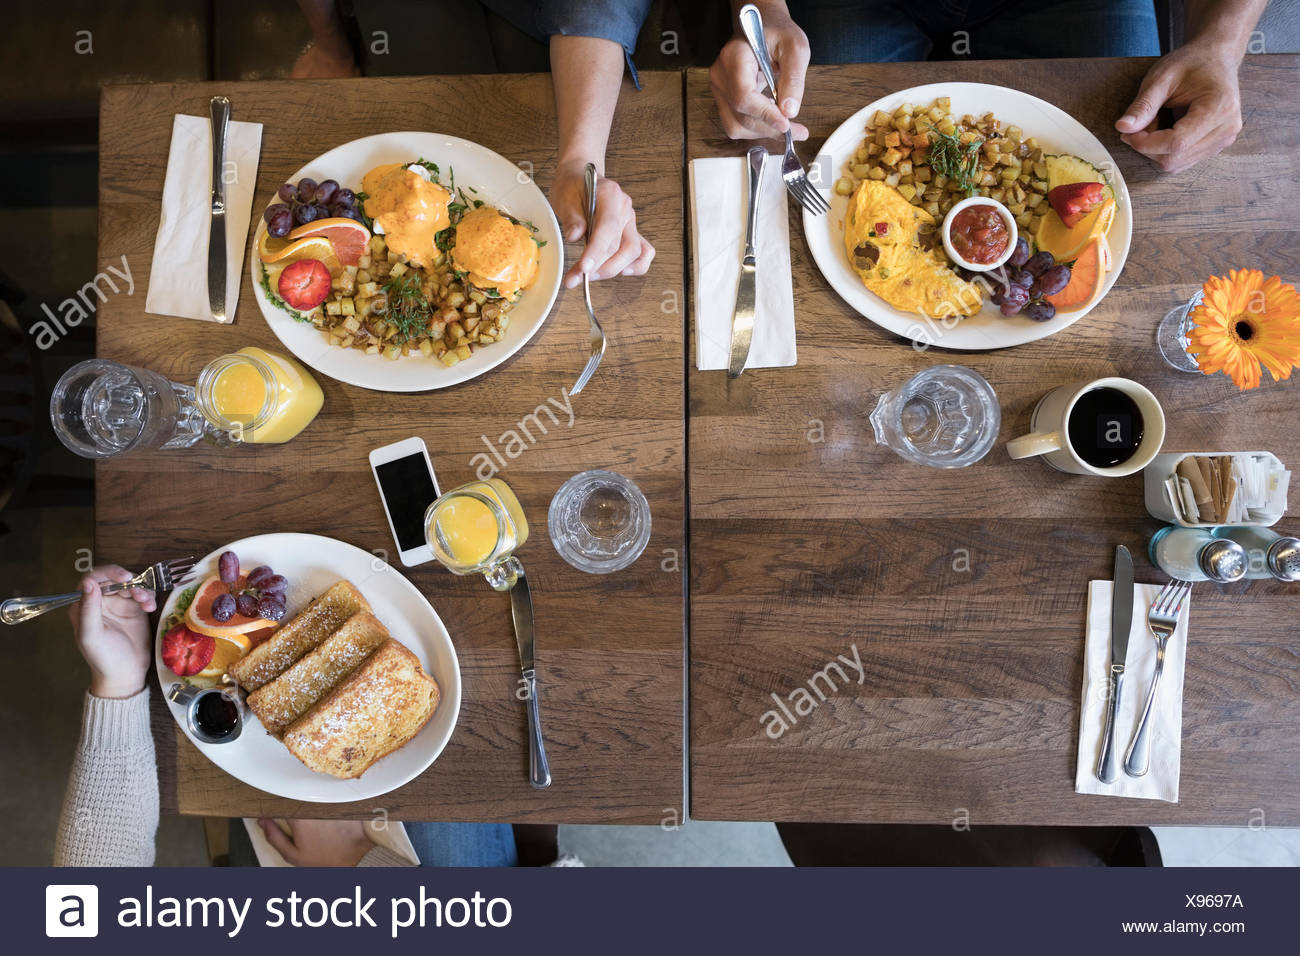 Overhead view family eating brunch at diner table - Stock Image